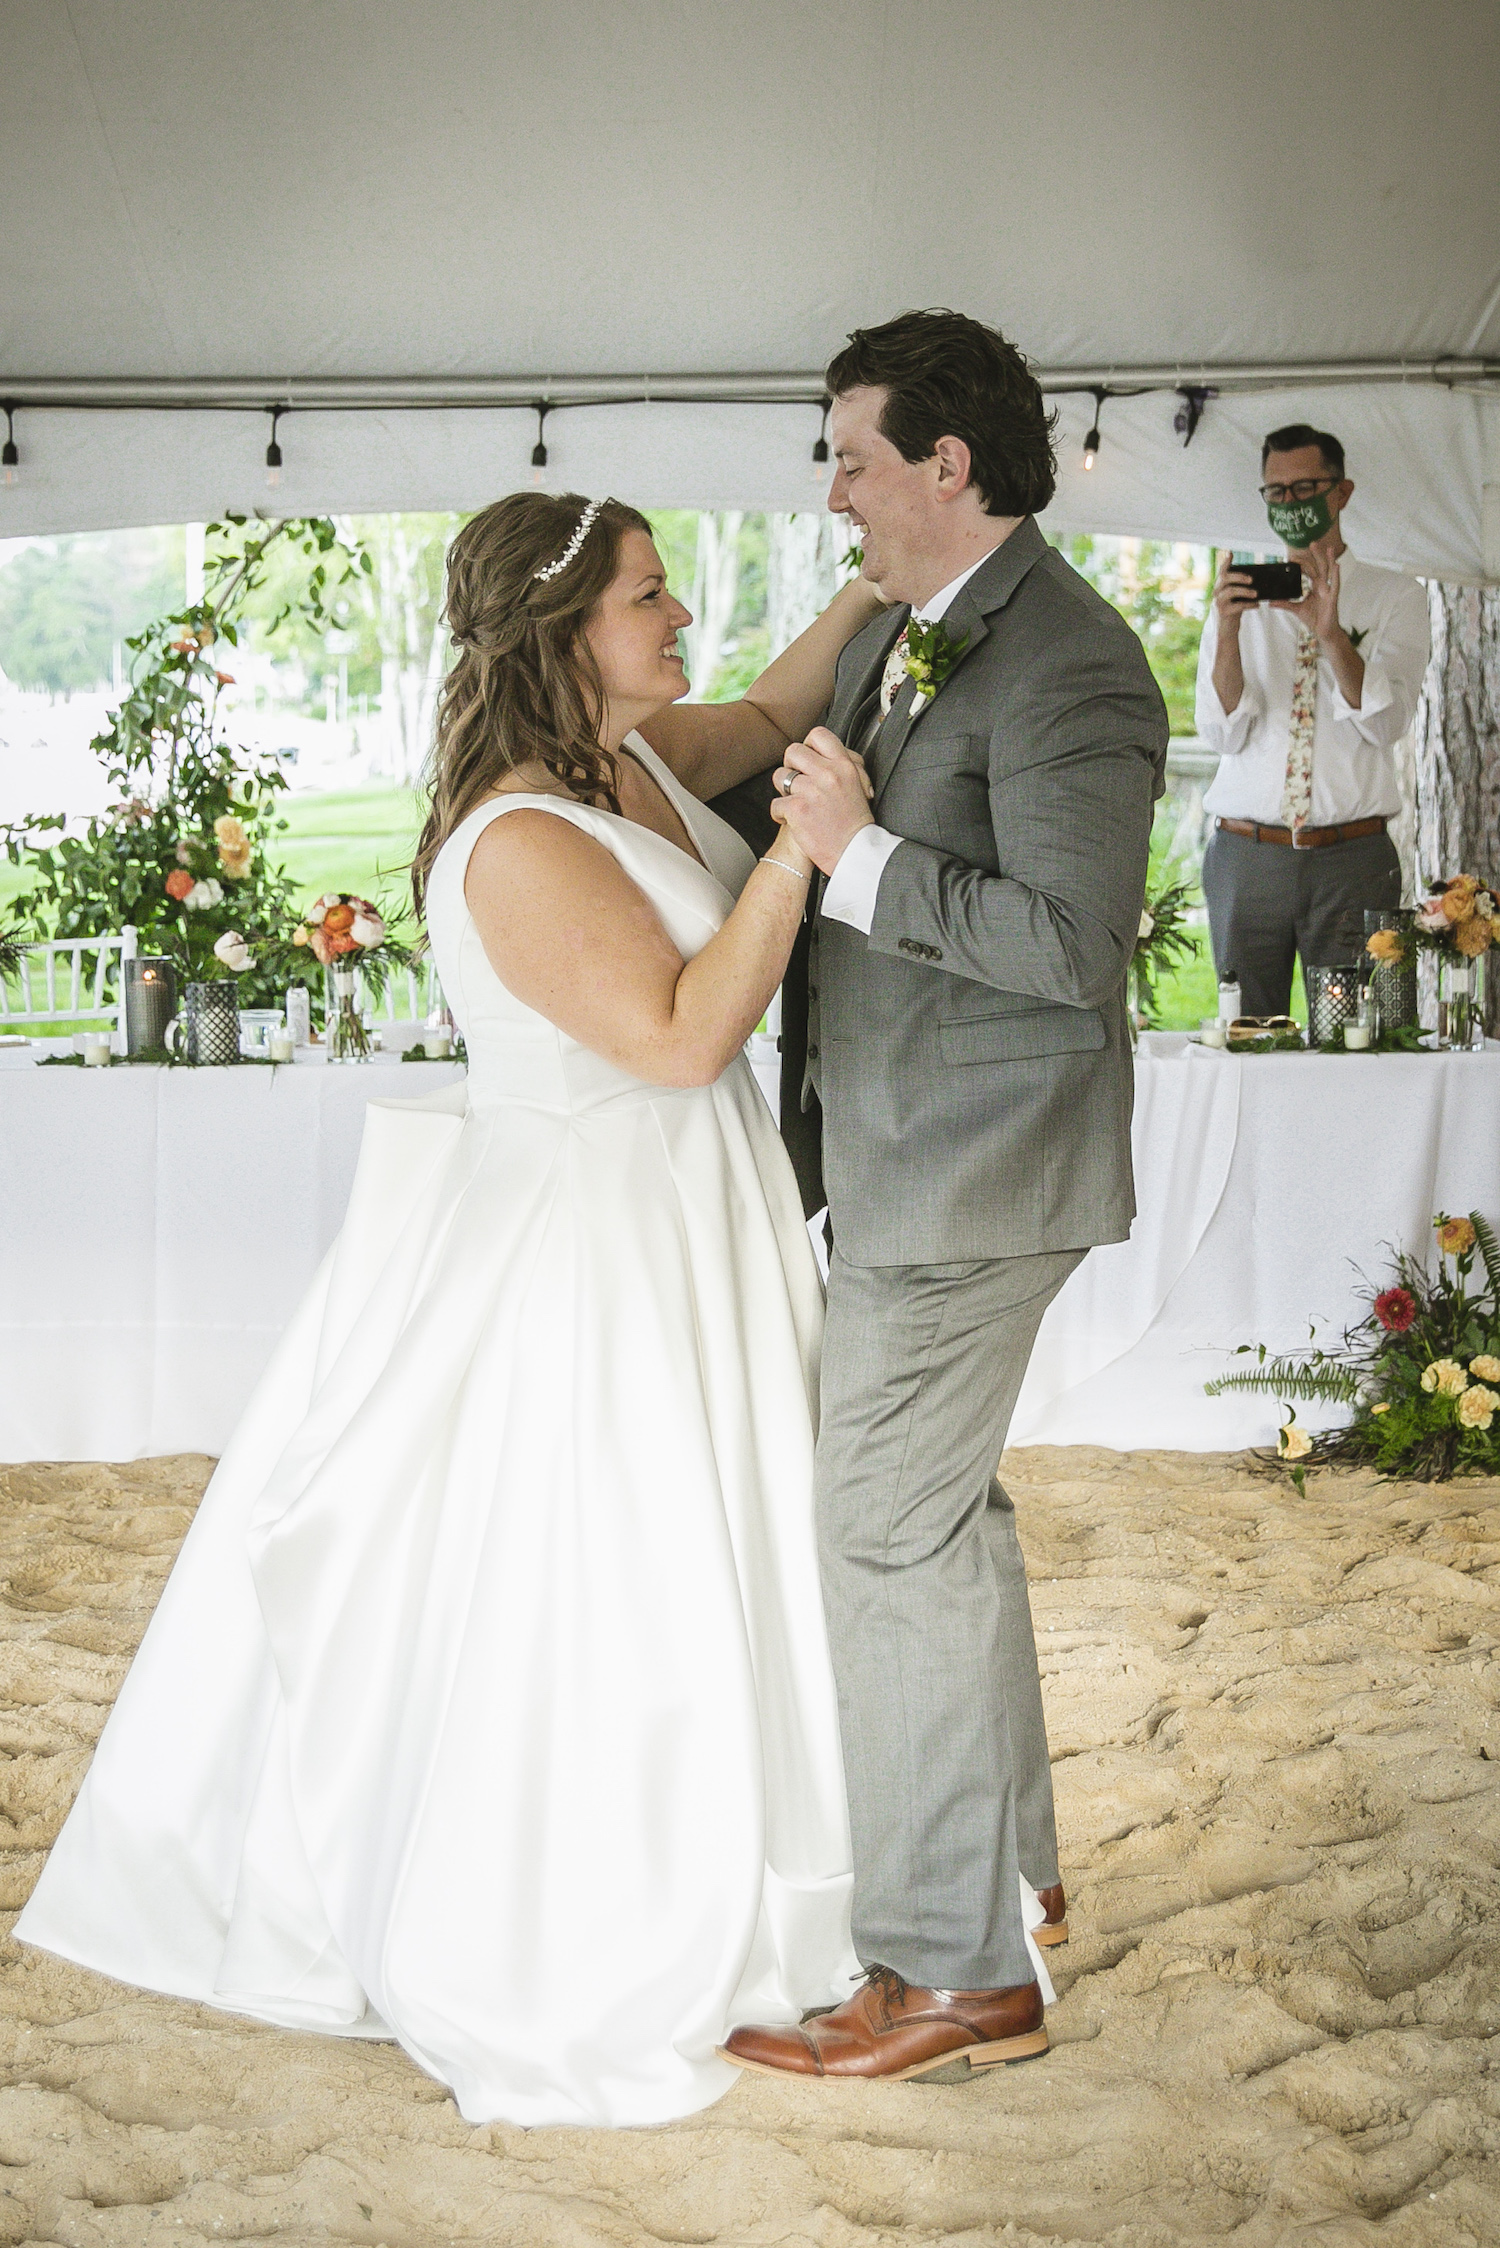 Bride and groom first dance at Higgins lake wedding